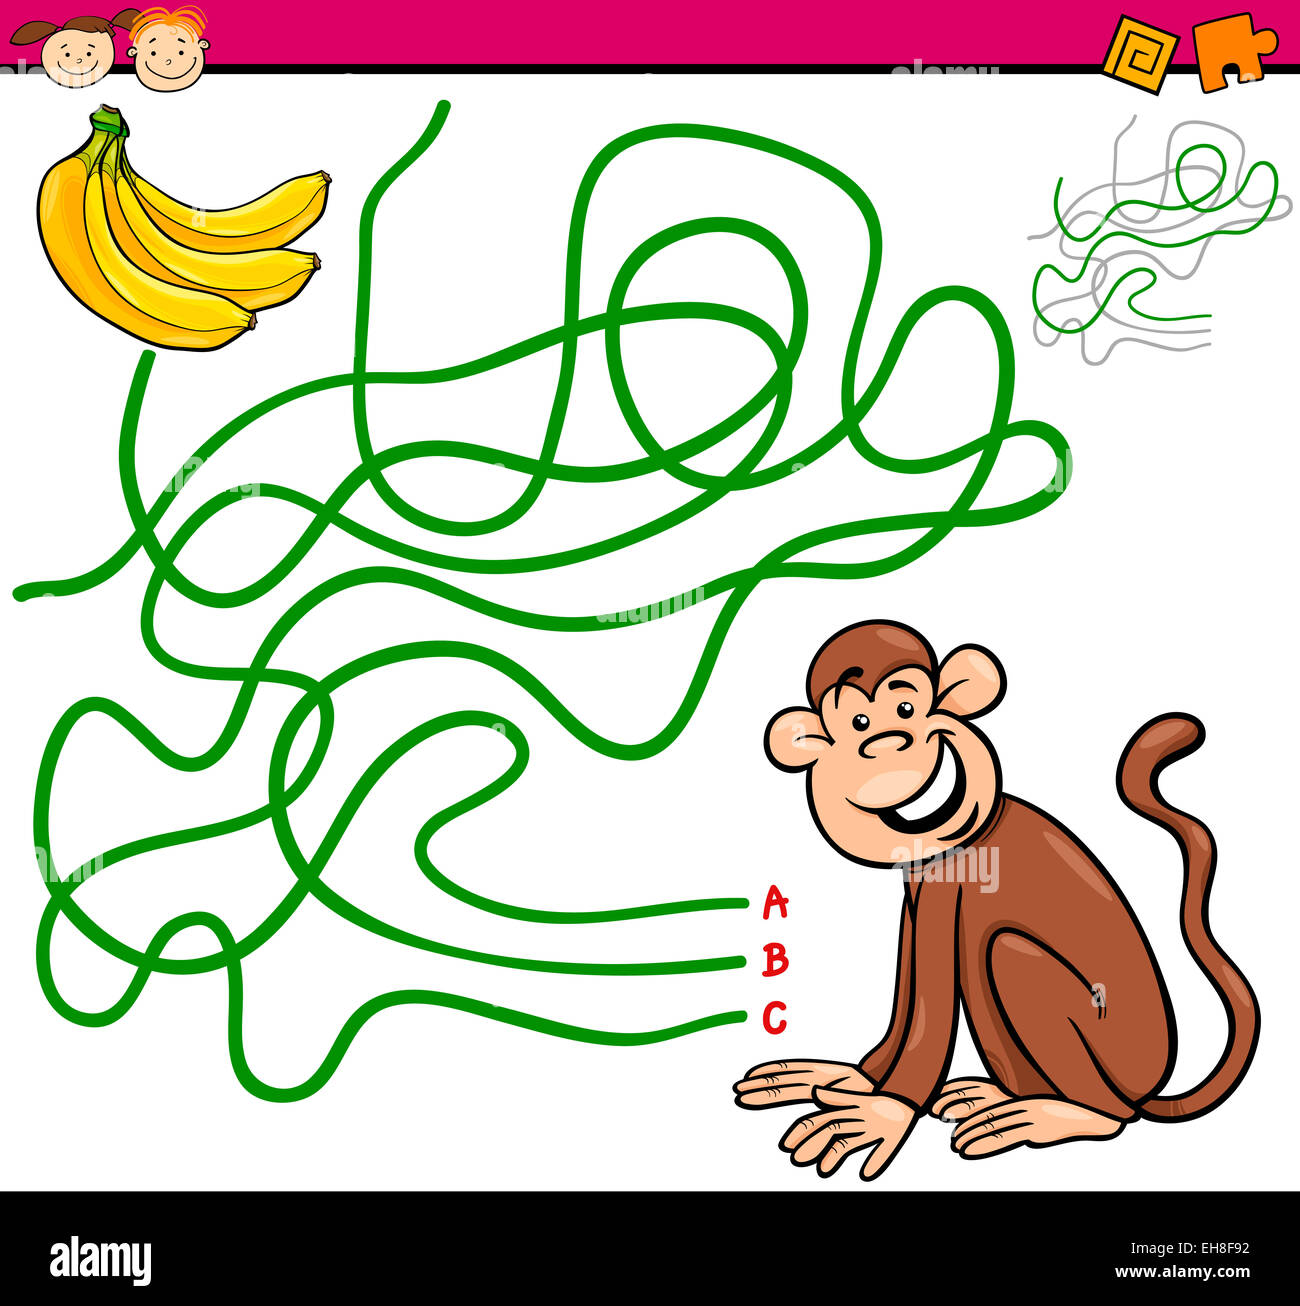 Cartoon Illustration Of Education Path Or Maze Game For